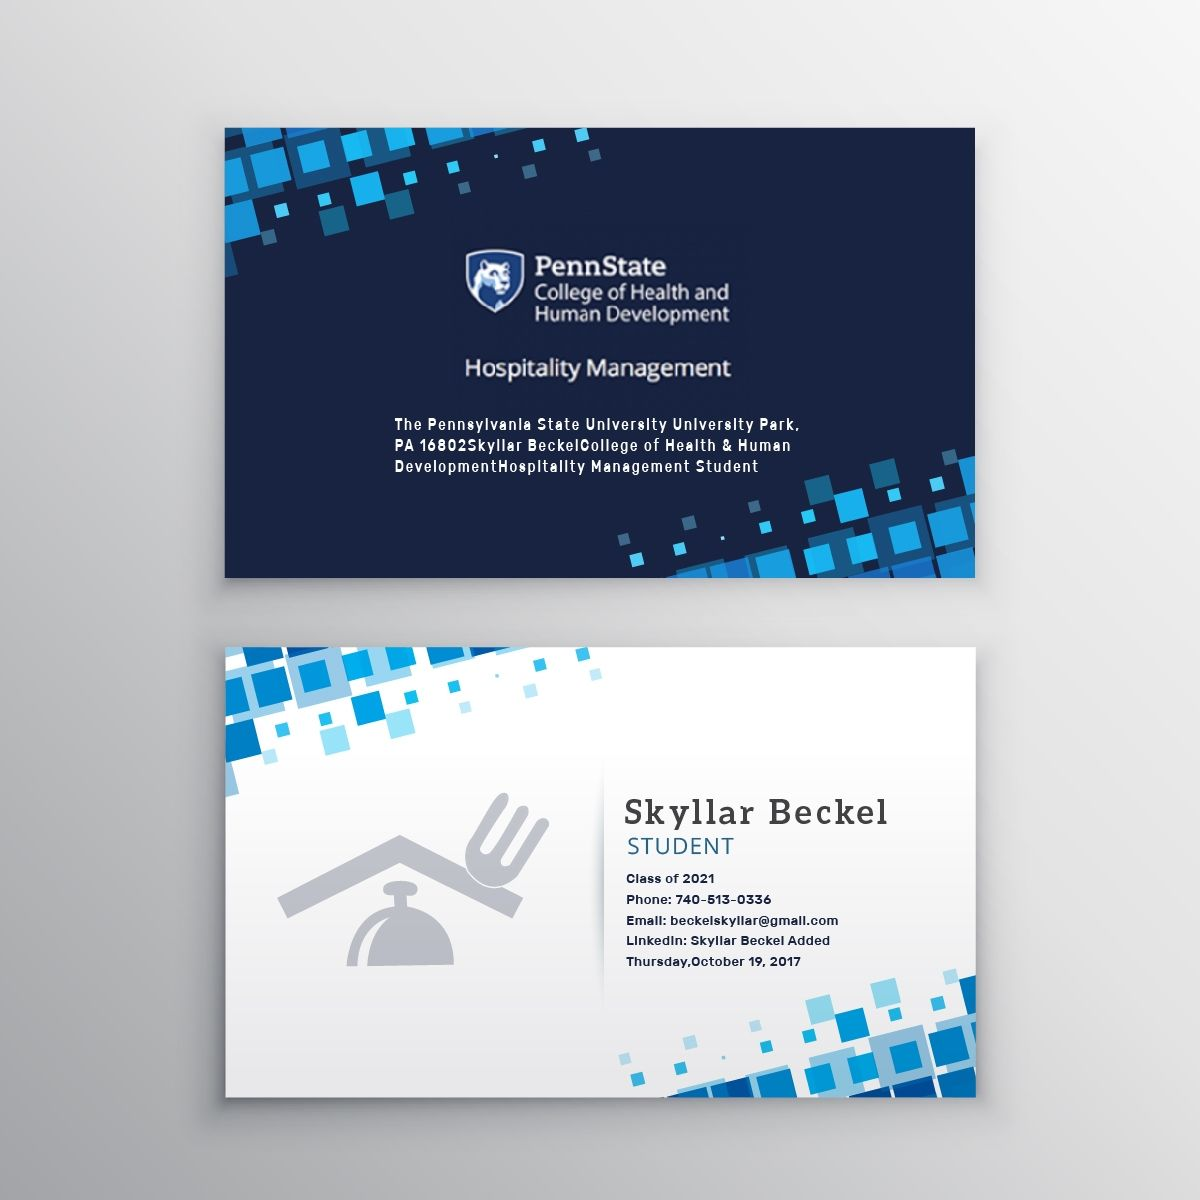 College Student Business Card Example Gallery Examples Of Business Cards Business Card Template Design Student Business Cards